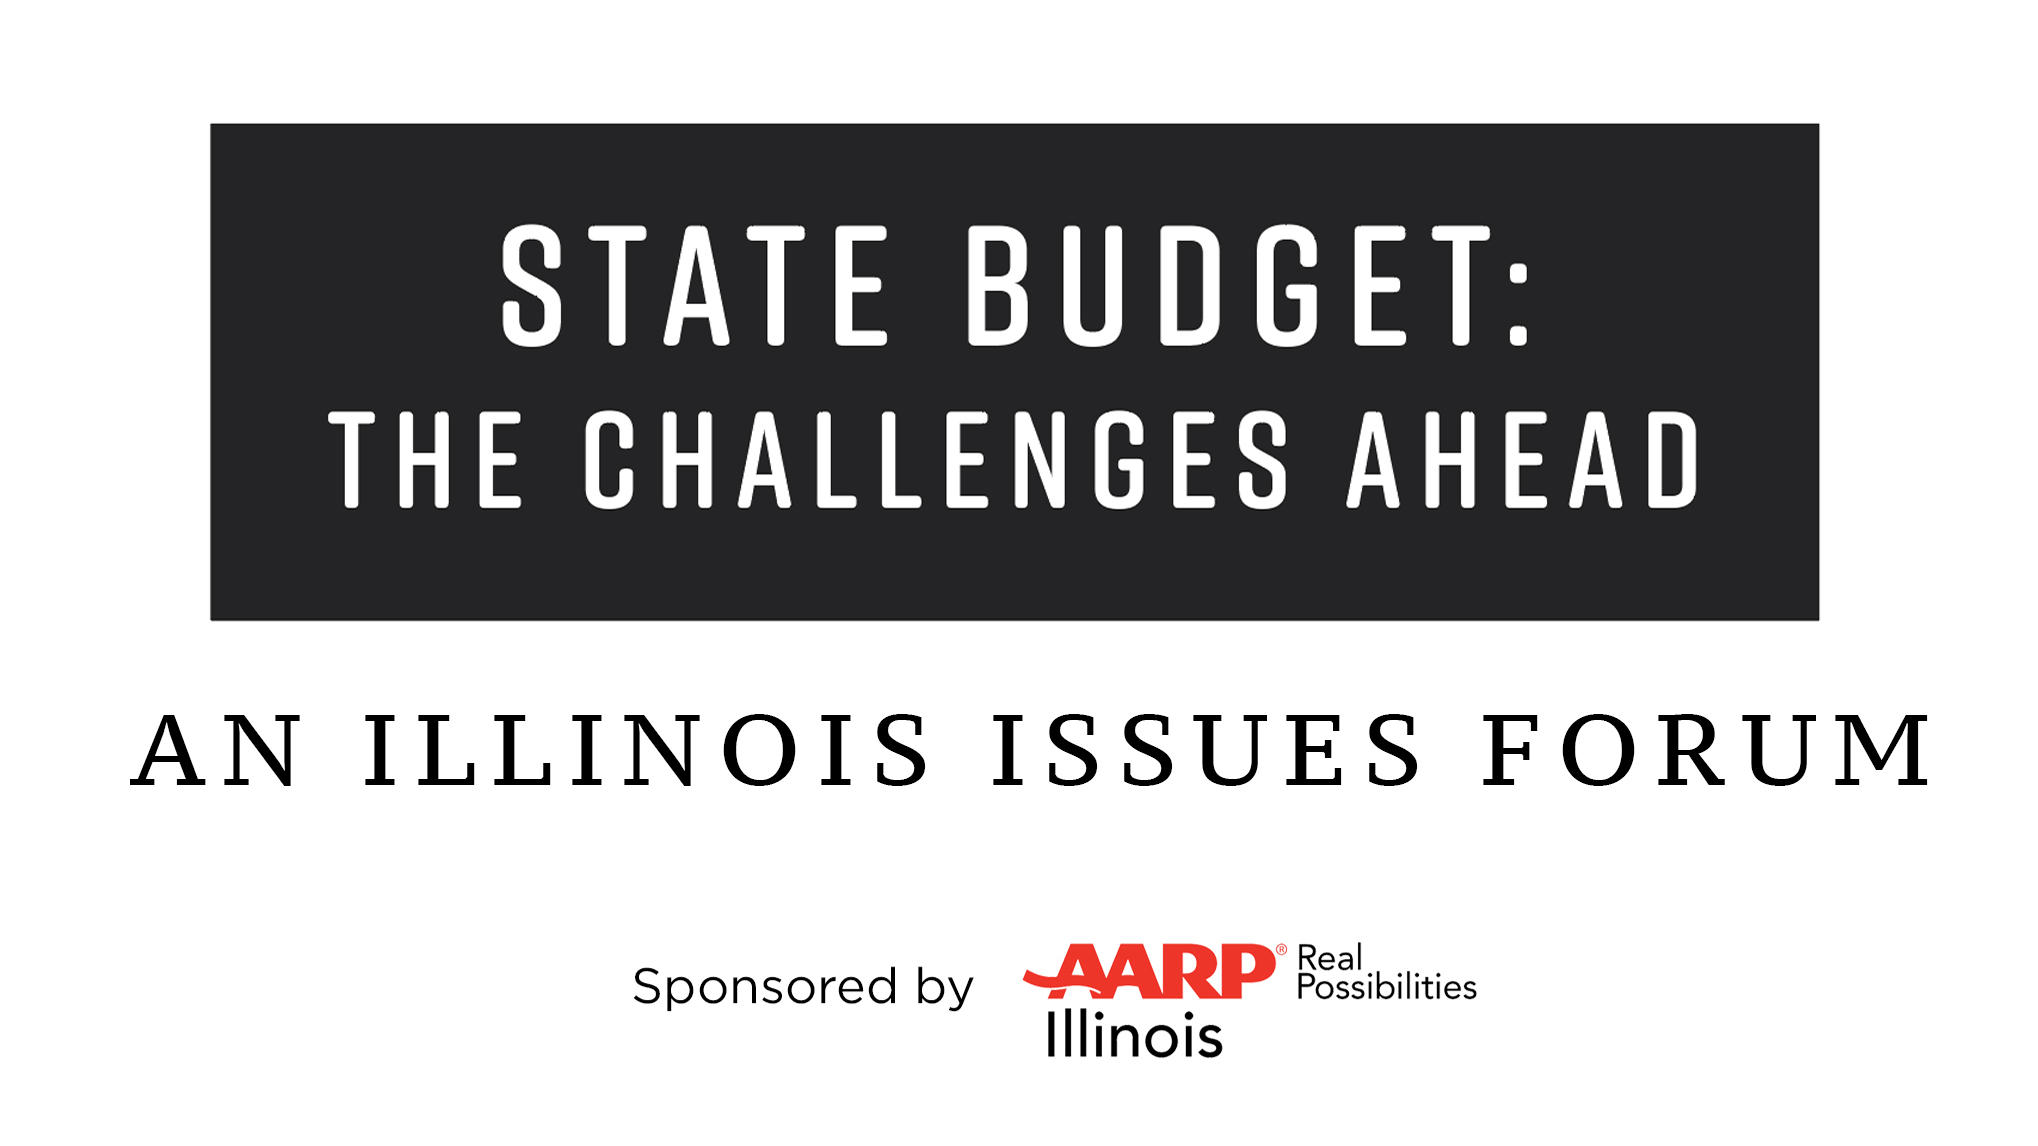 Mission Control: Past Due State Budget Forums | NPR Illinois